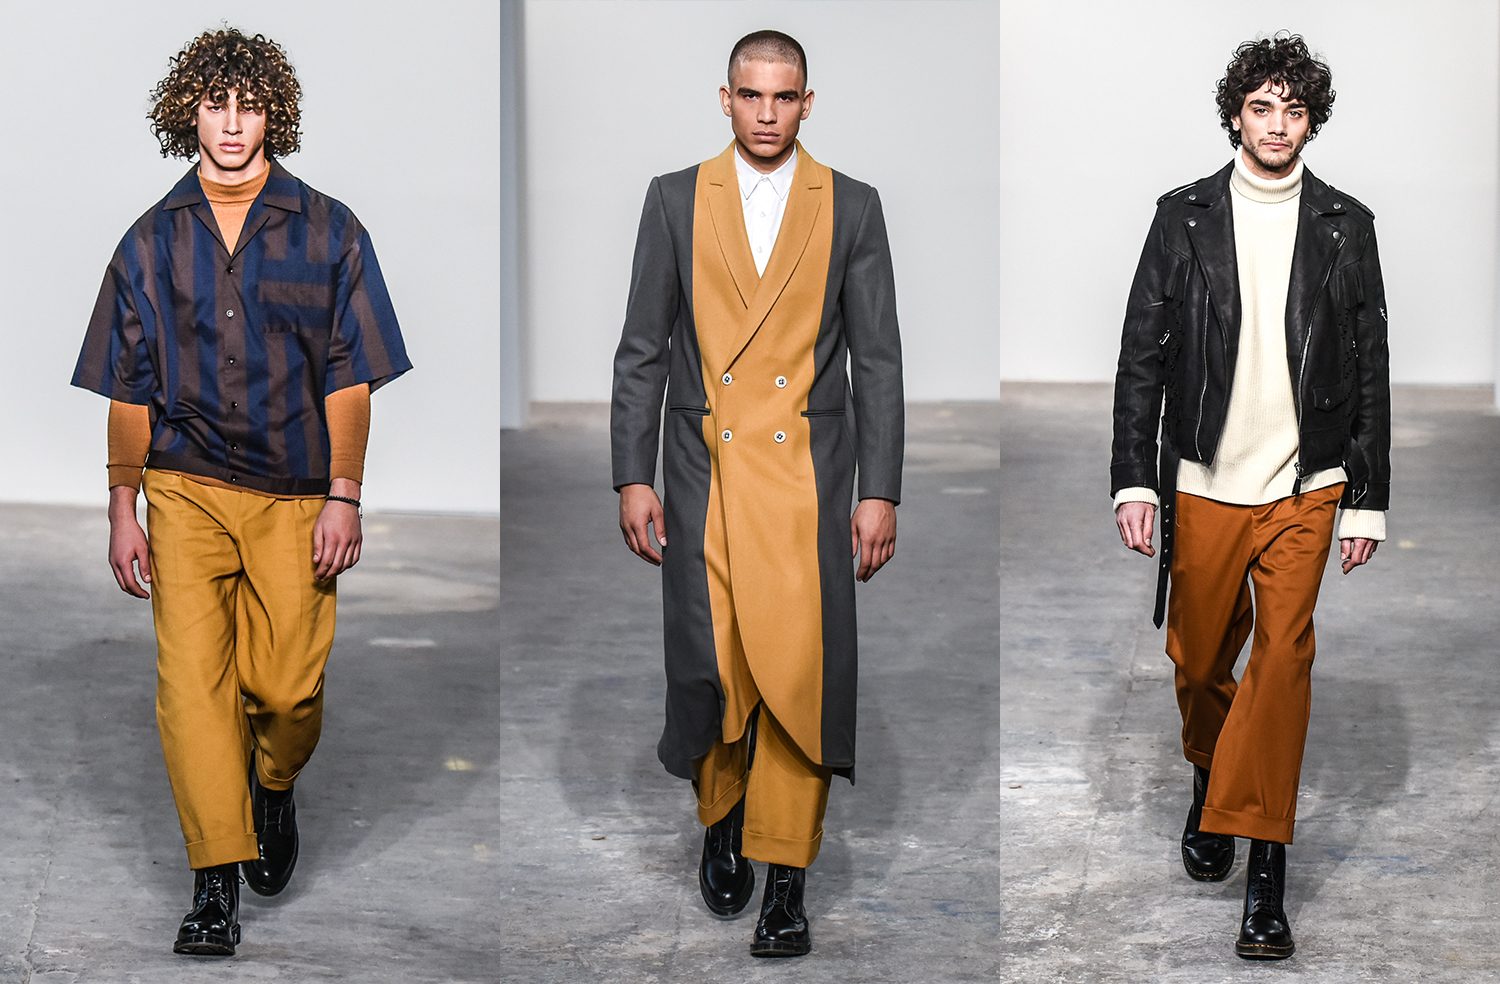 Carlos Campos AW17, New York Fashion Week Men's